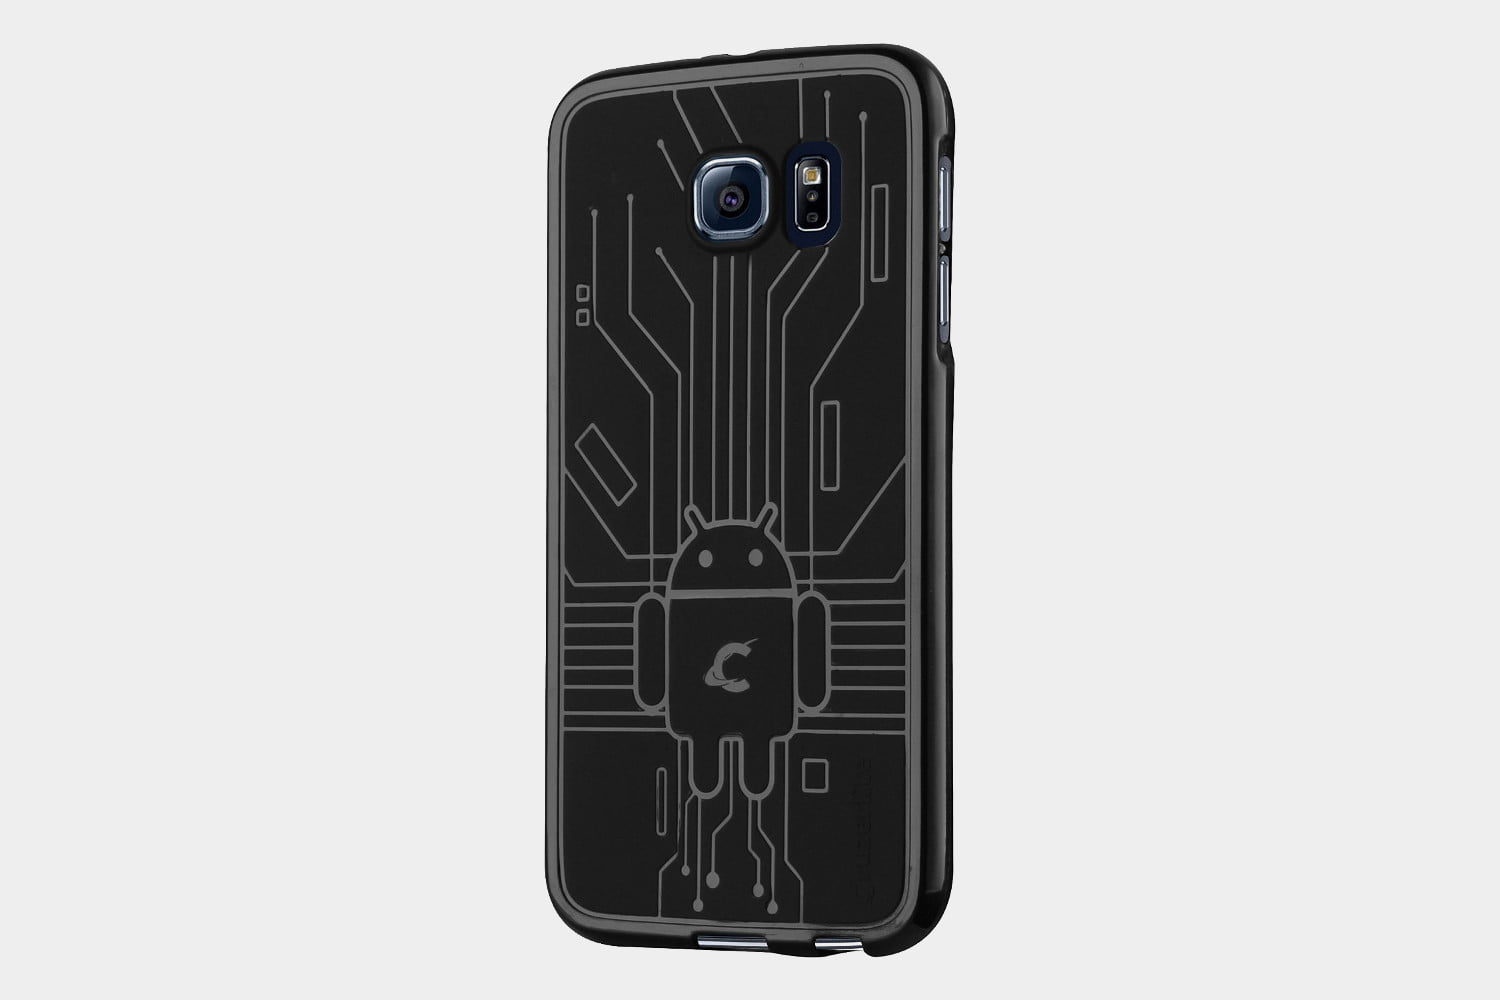 samsung s6 mobile phone case